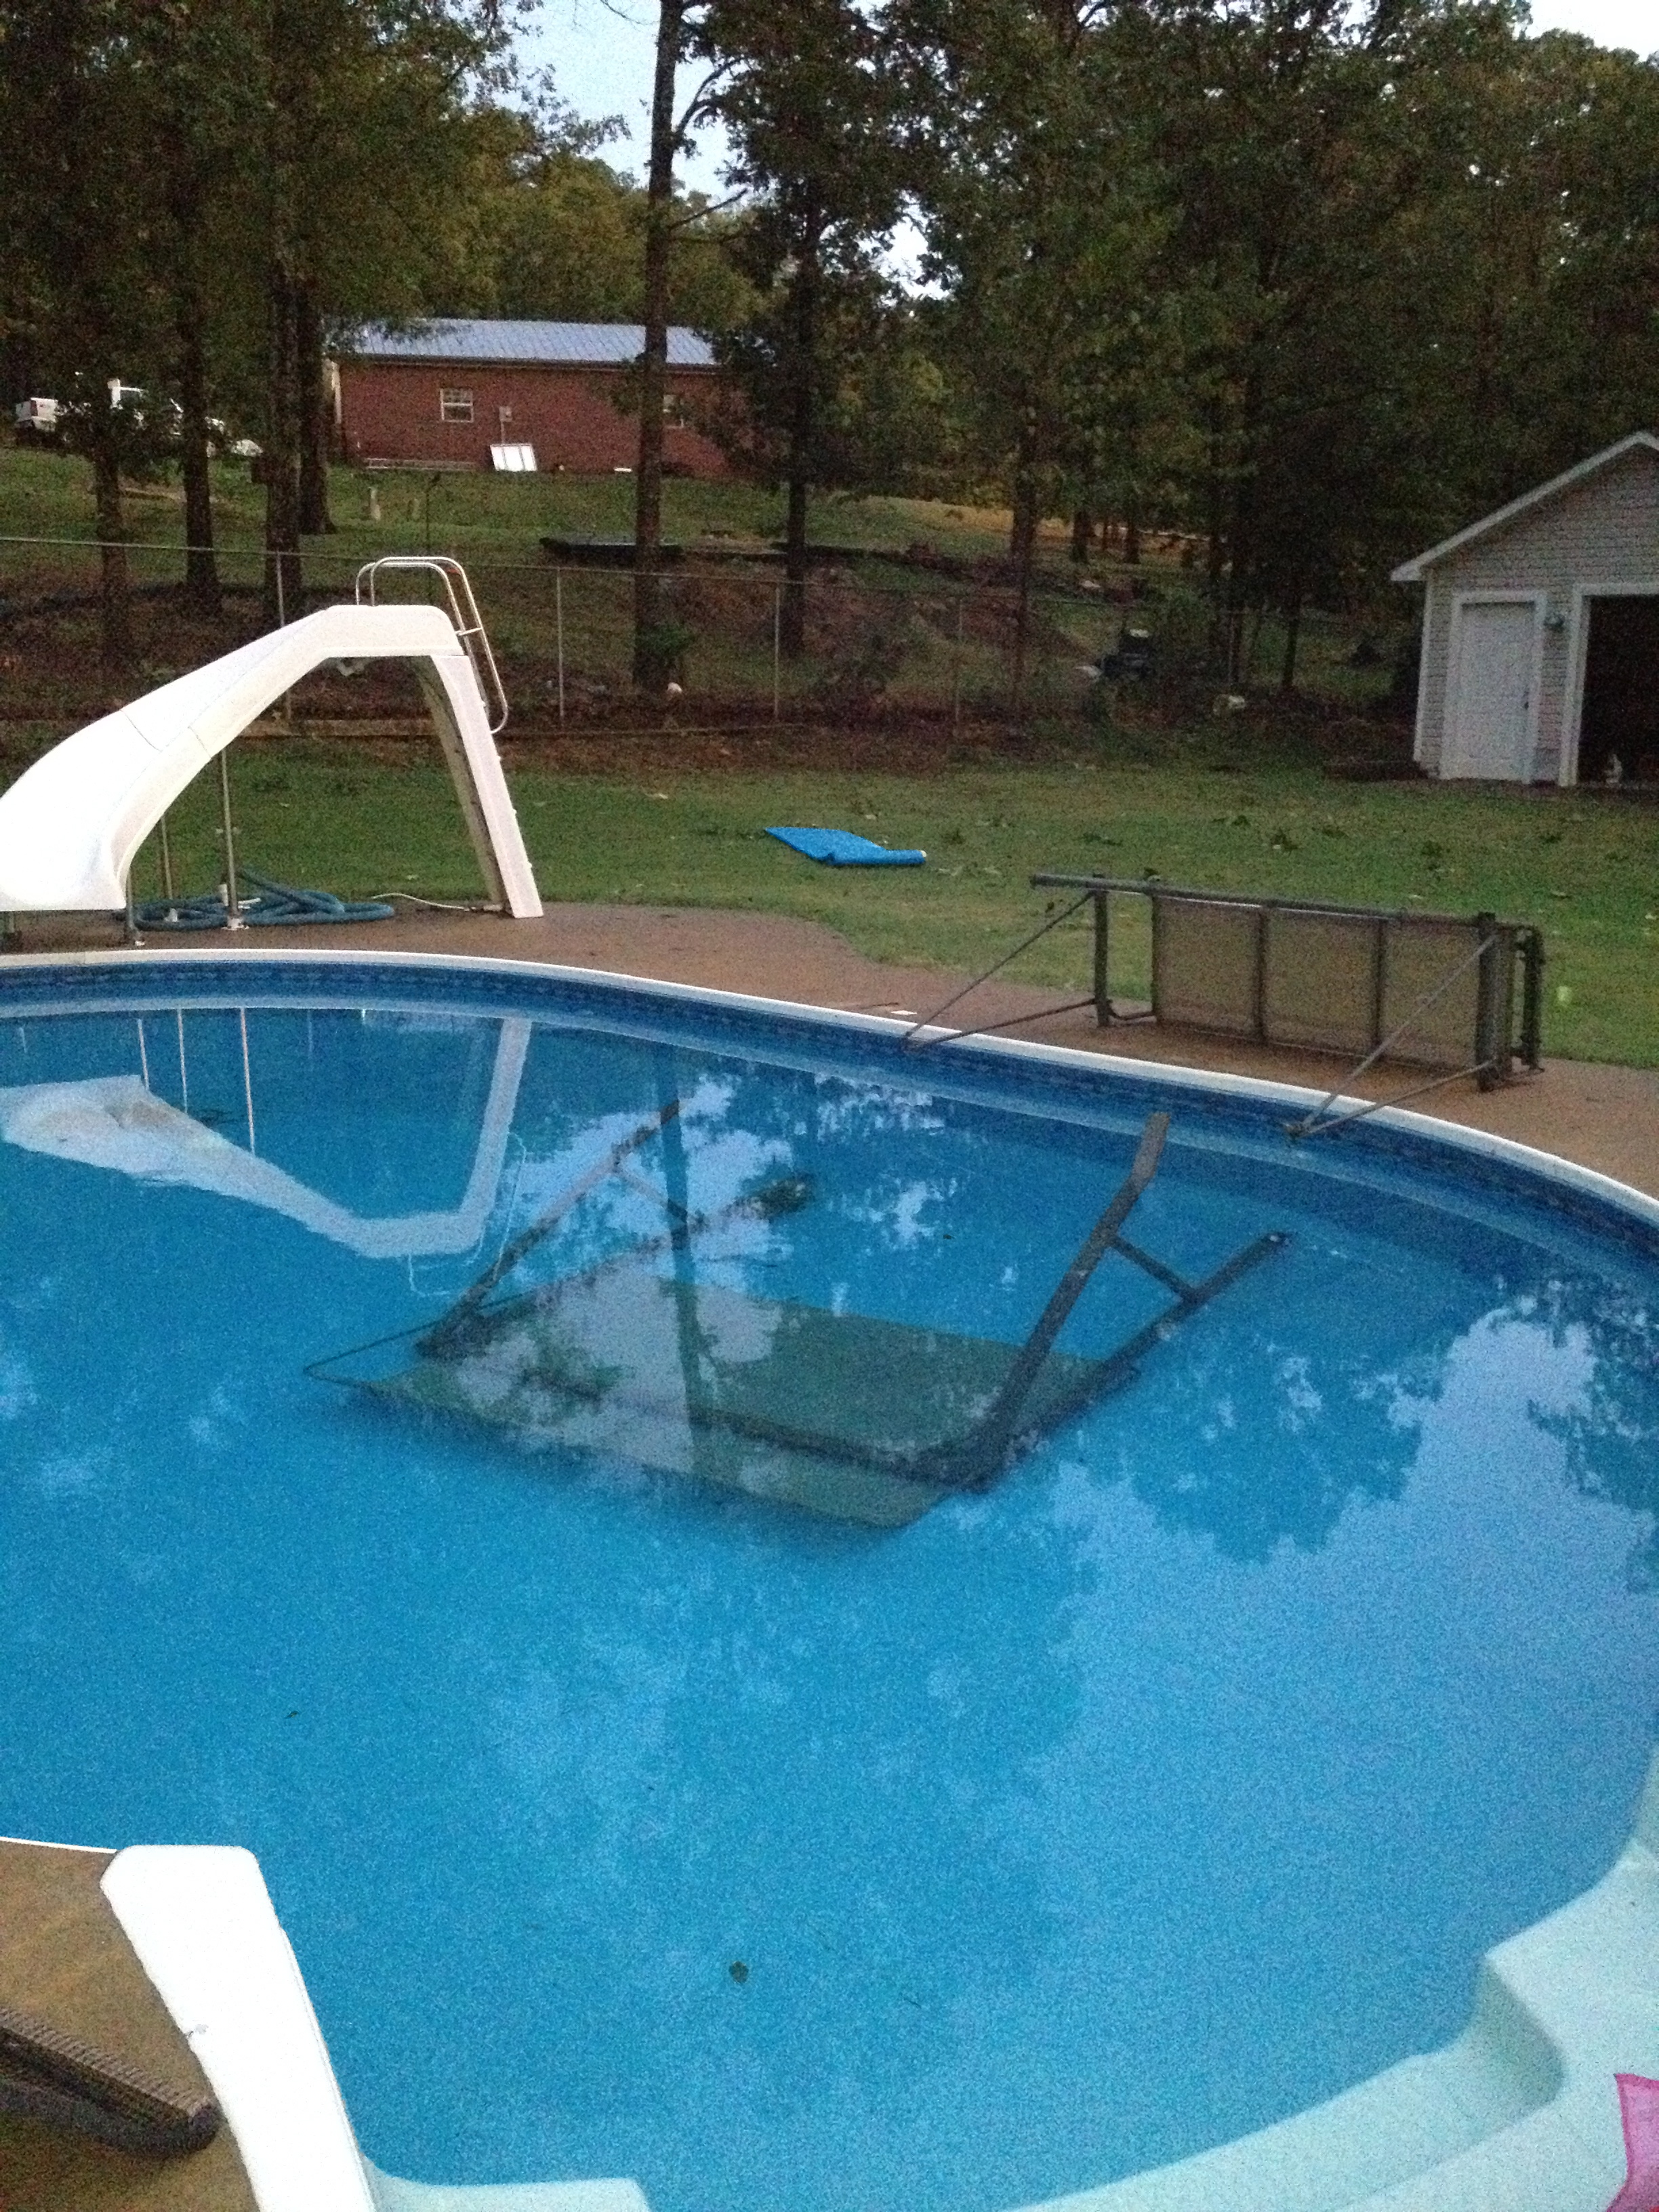 Not exactly the best use of a poolside swing!